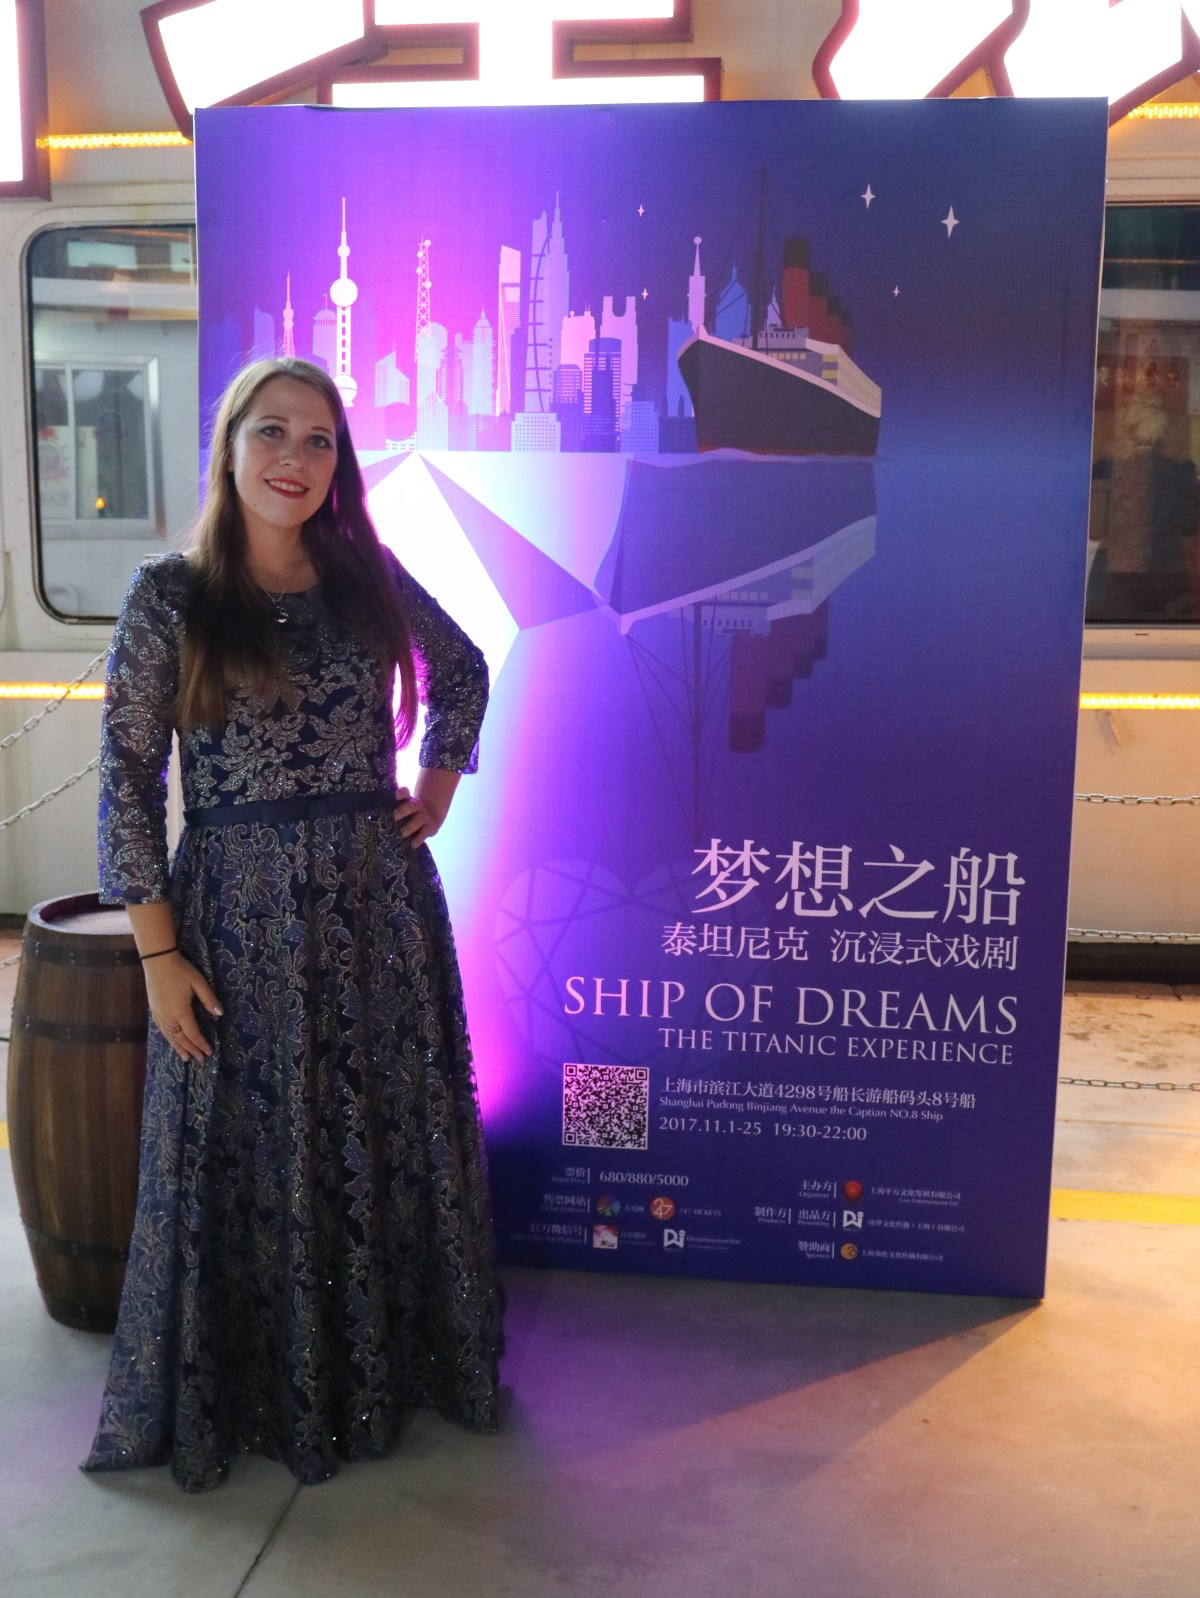 Shanghai Event Review: Ship of Dreams – The Titanic Experience